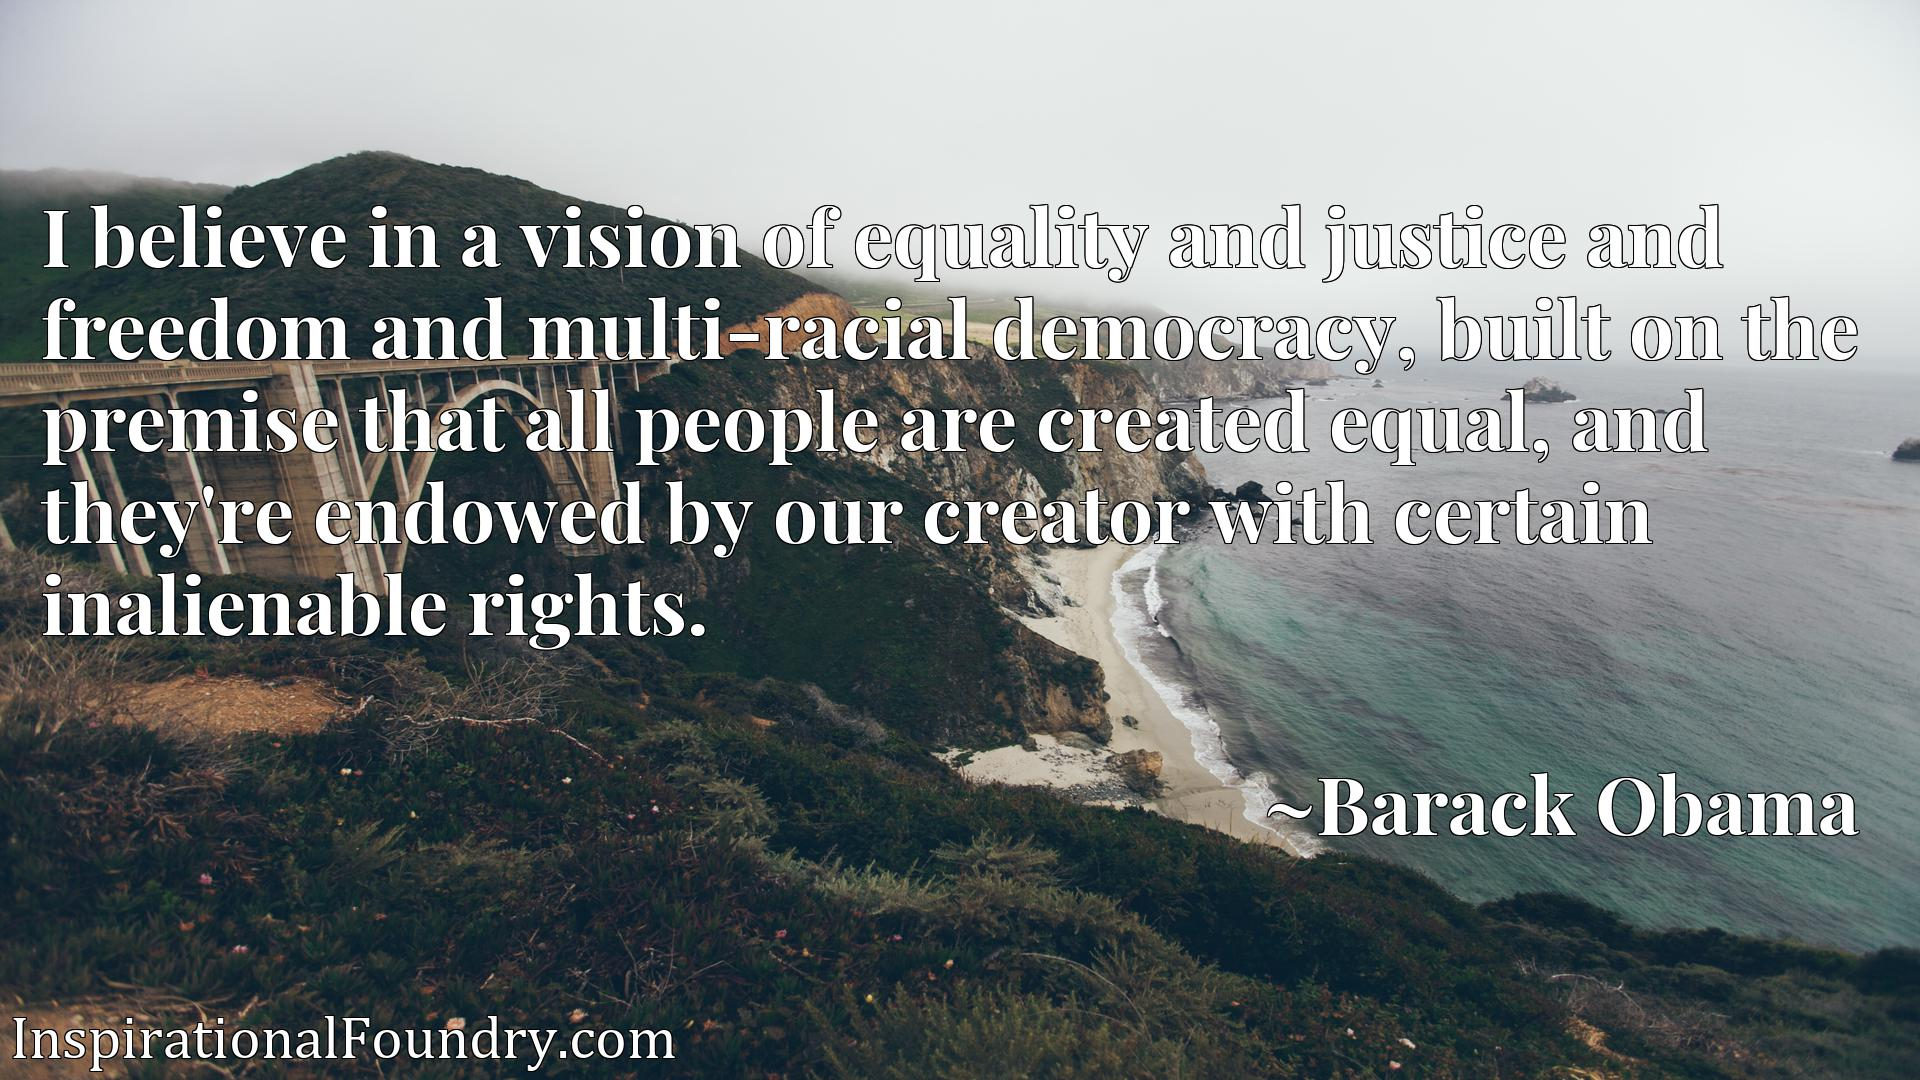 I believe in a vision of equality and justice and freedom and multi-racial democracy, built on the premise that all people are created equal, and they're endowed by our creator with certain inalienable rights.